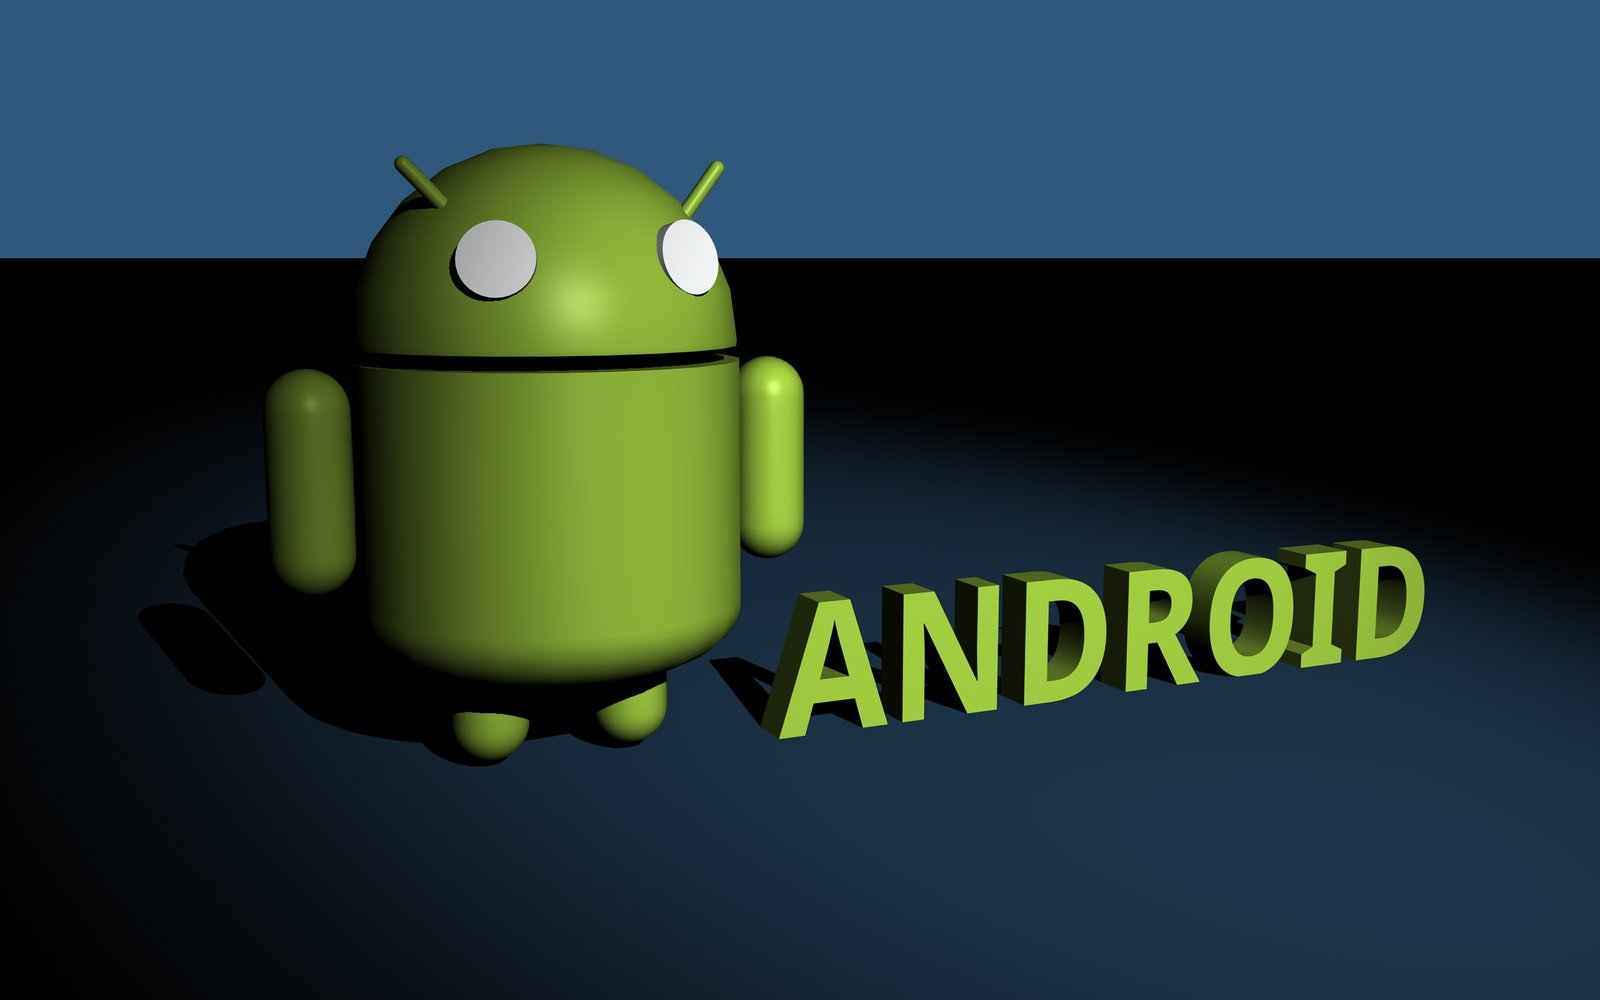 Free Download Android Background Hd Wallpaper Details 1600x1000